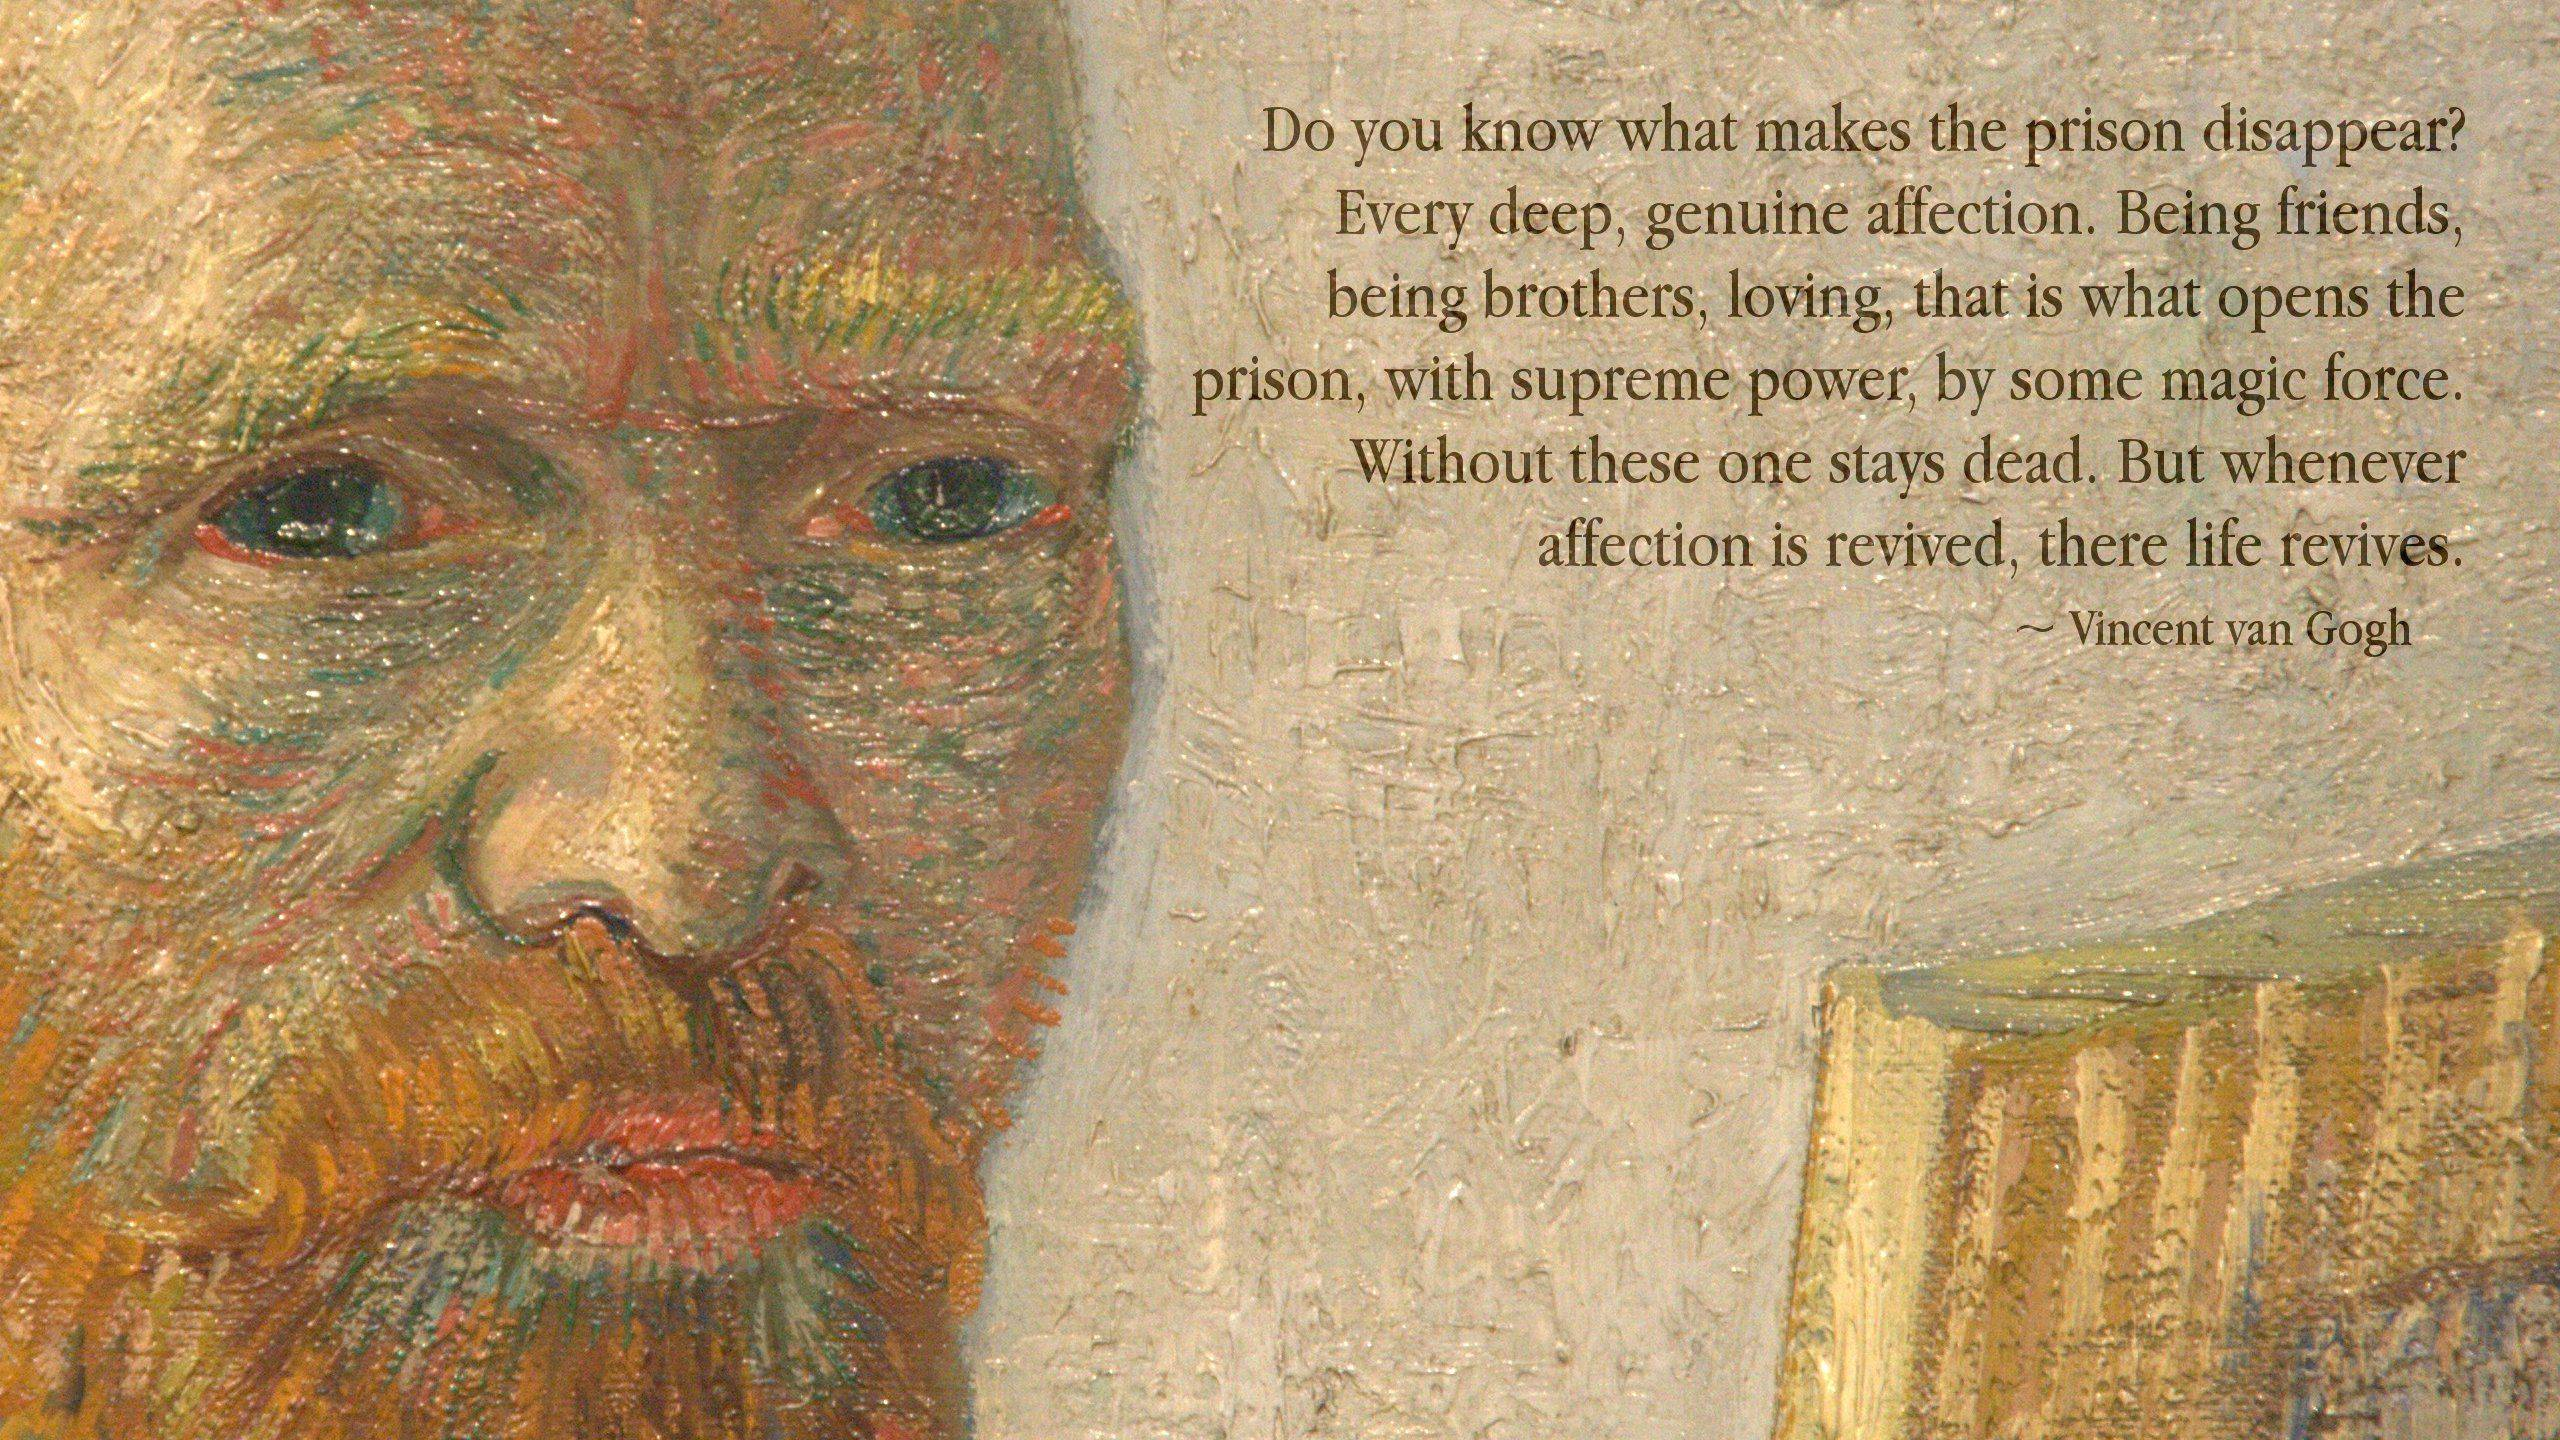 Vincent Van Gogh's quote #4